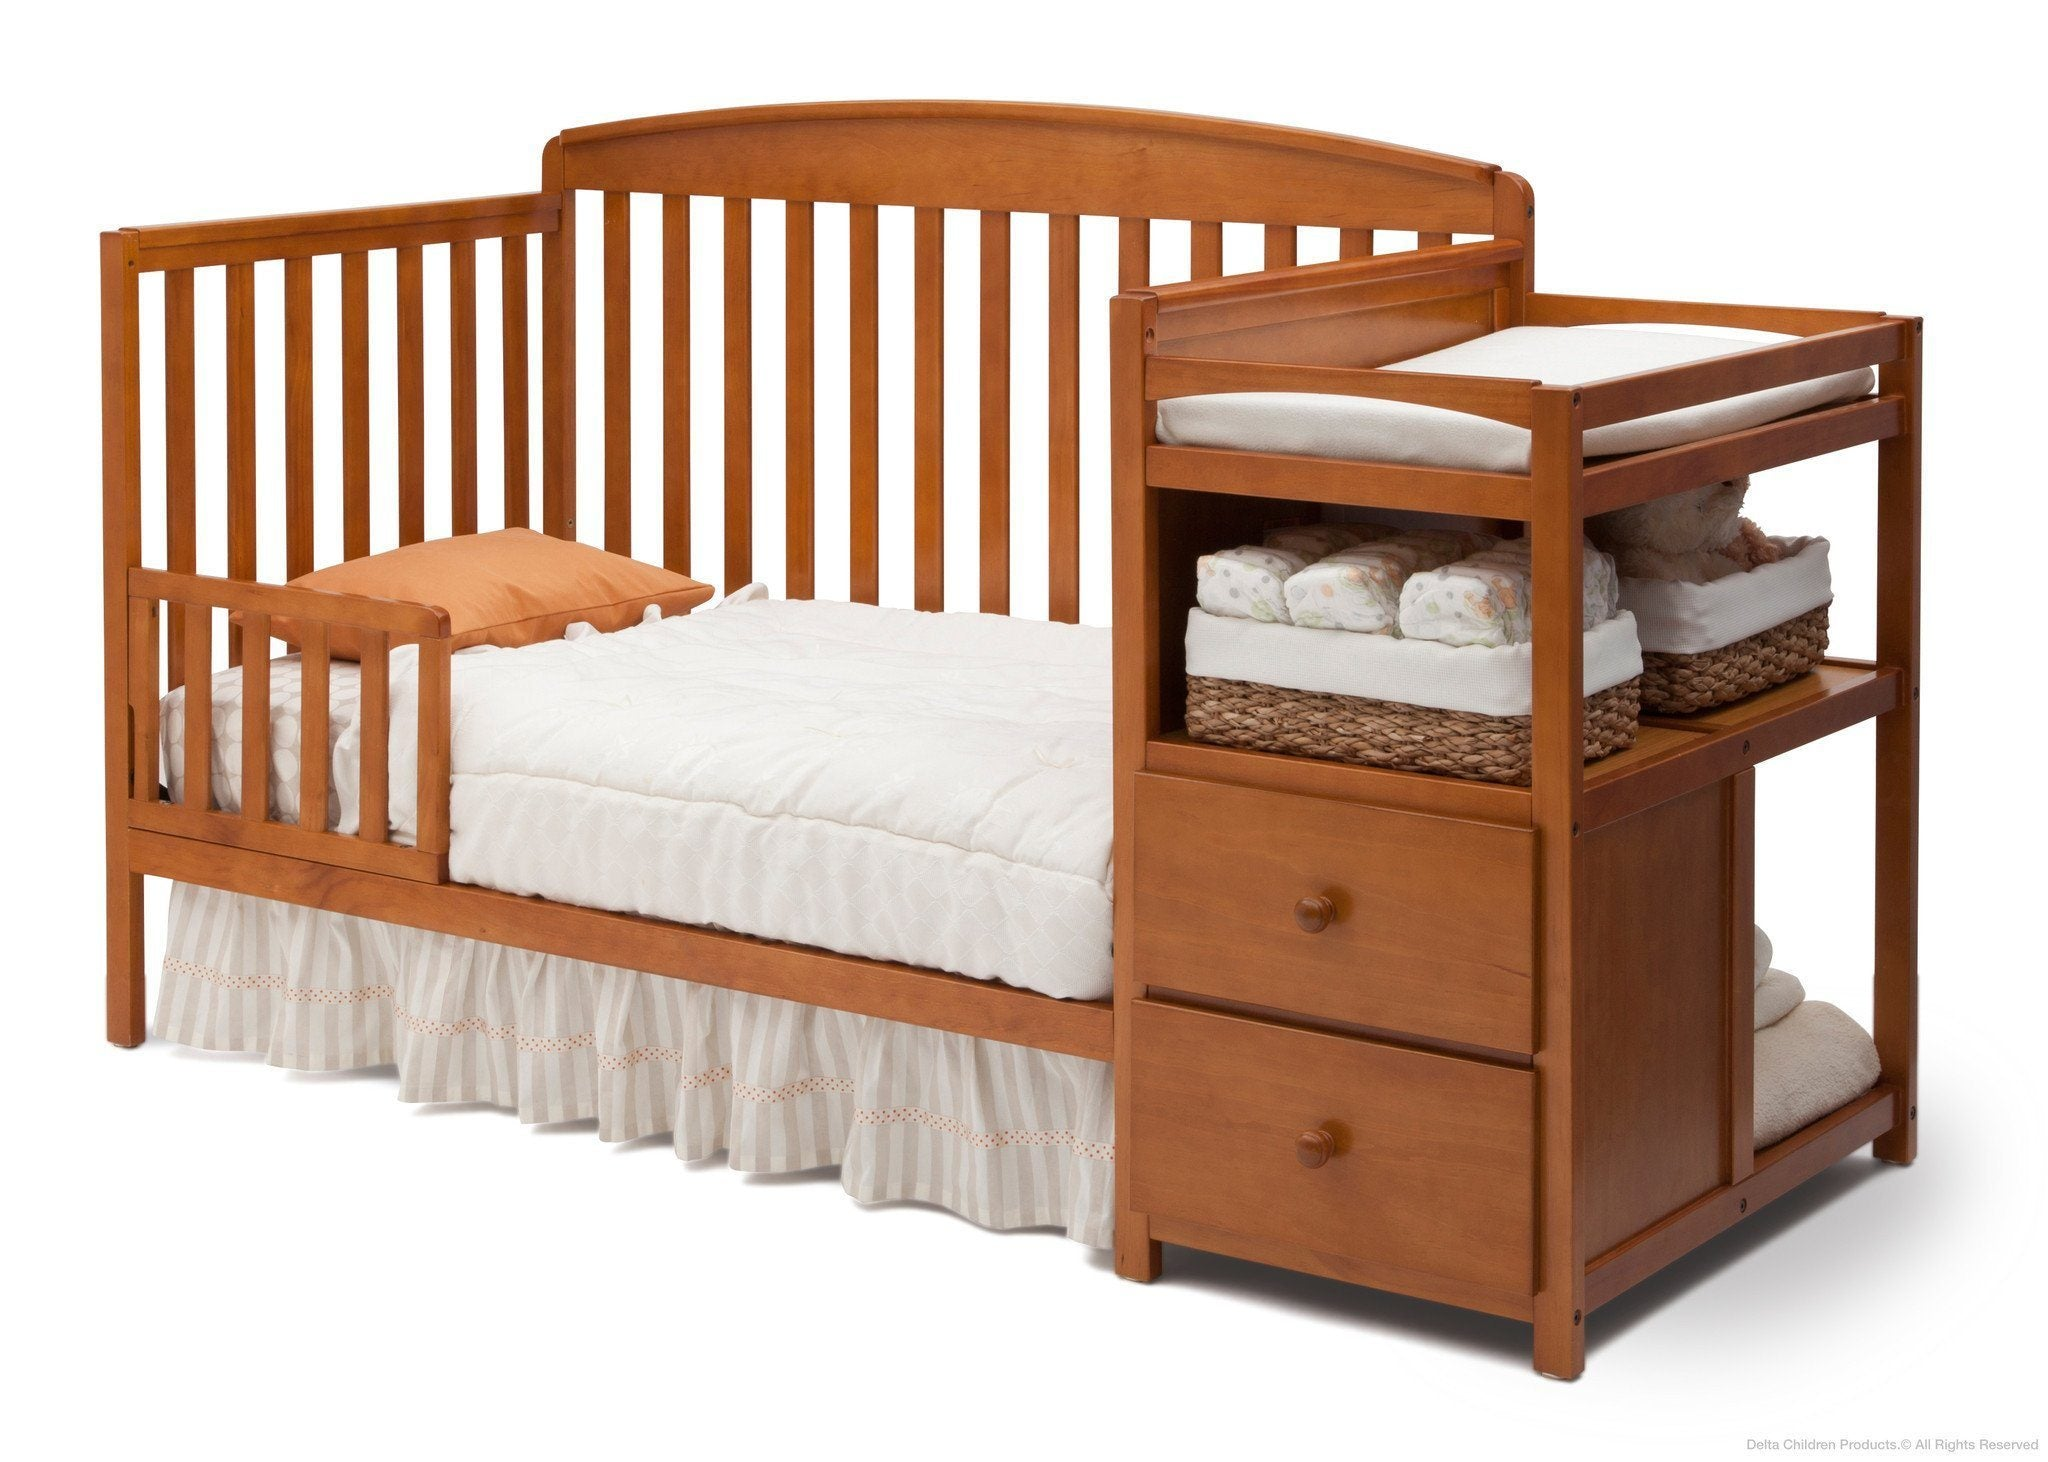 changing n convertible changer s amazon crib table com discontinued baby children cinnamon cribs dp products childrens houston by delta spice manufacturer